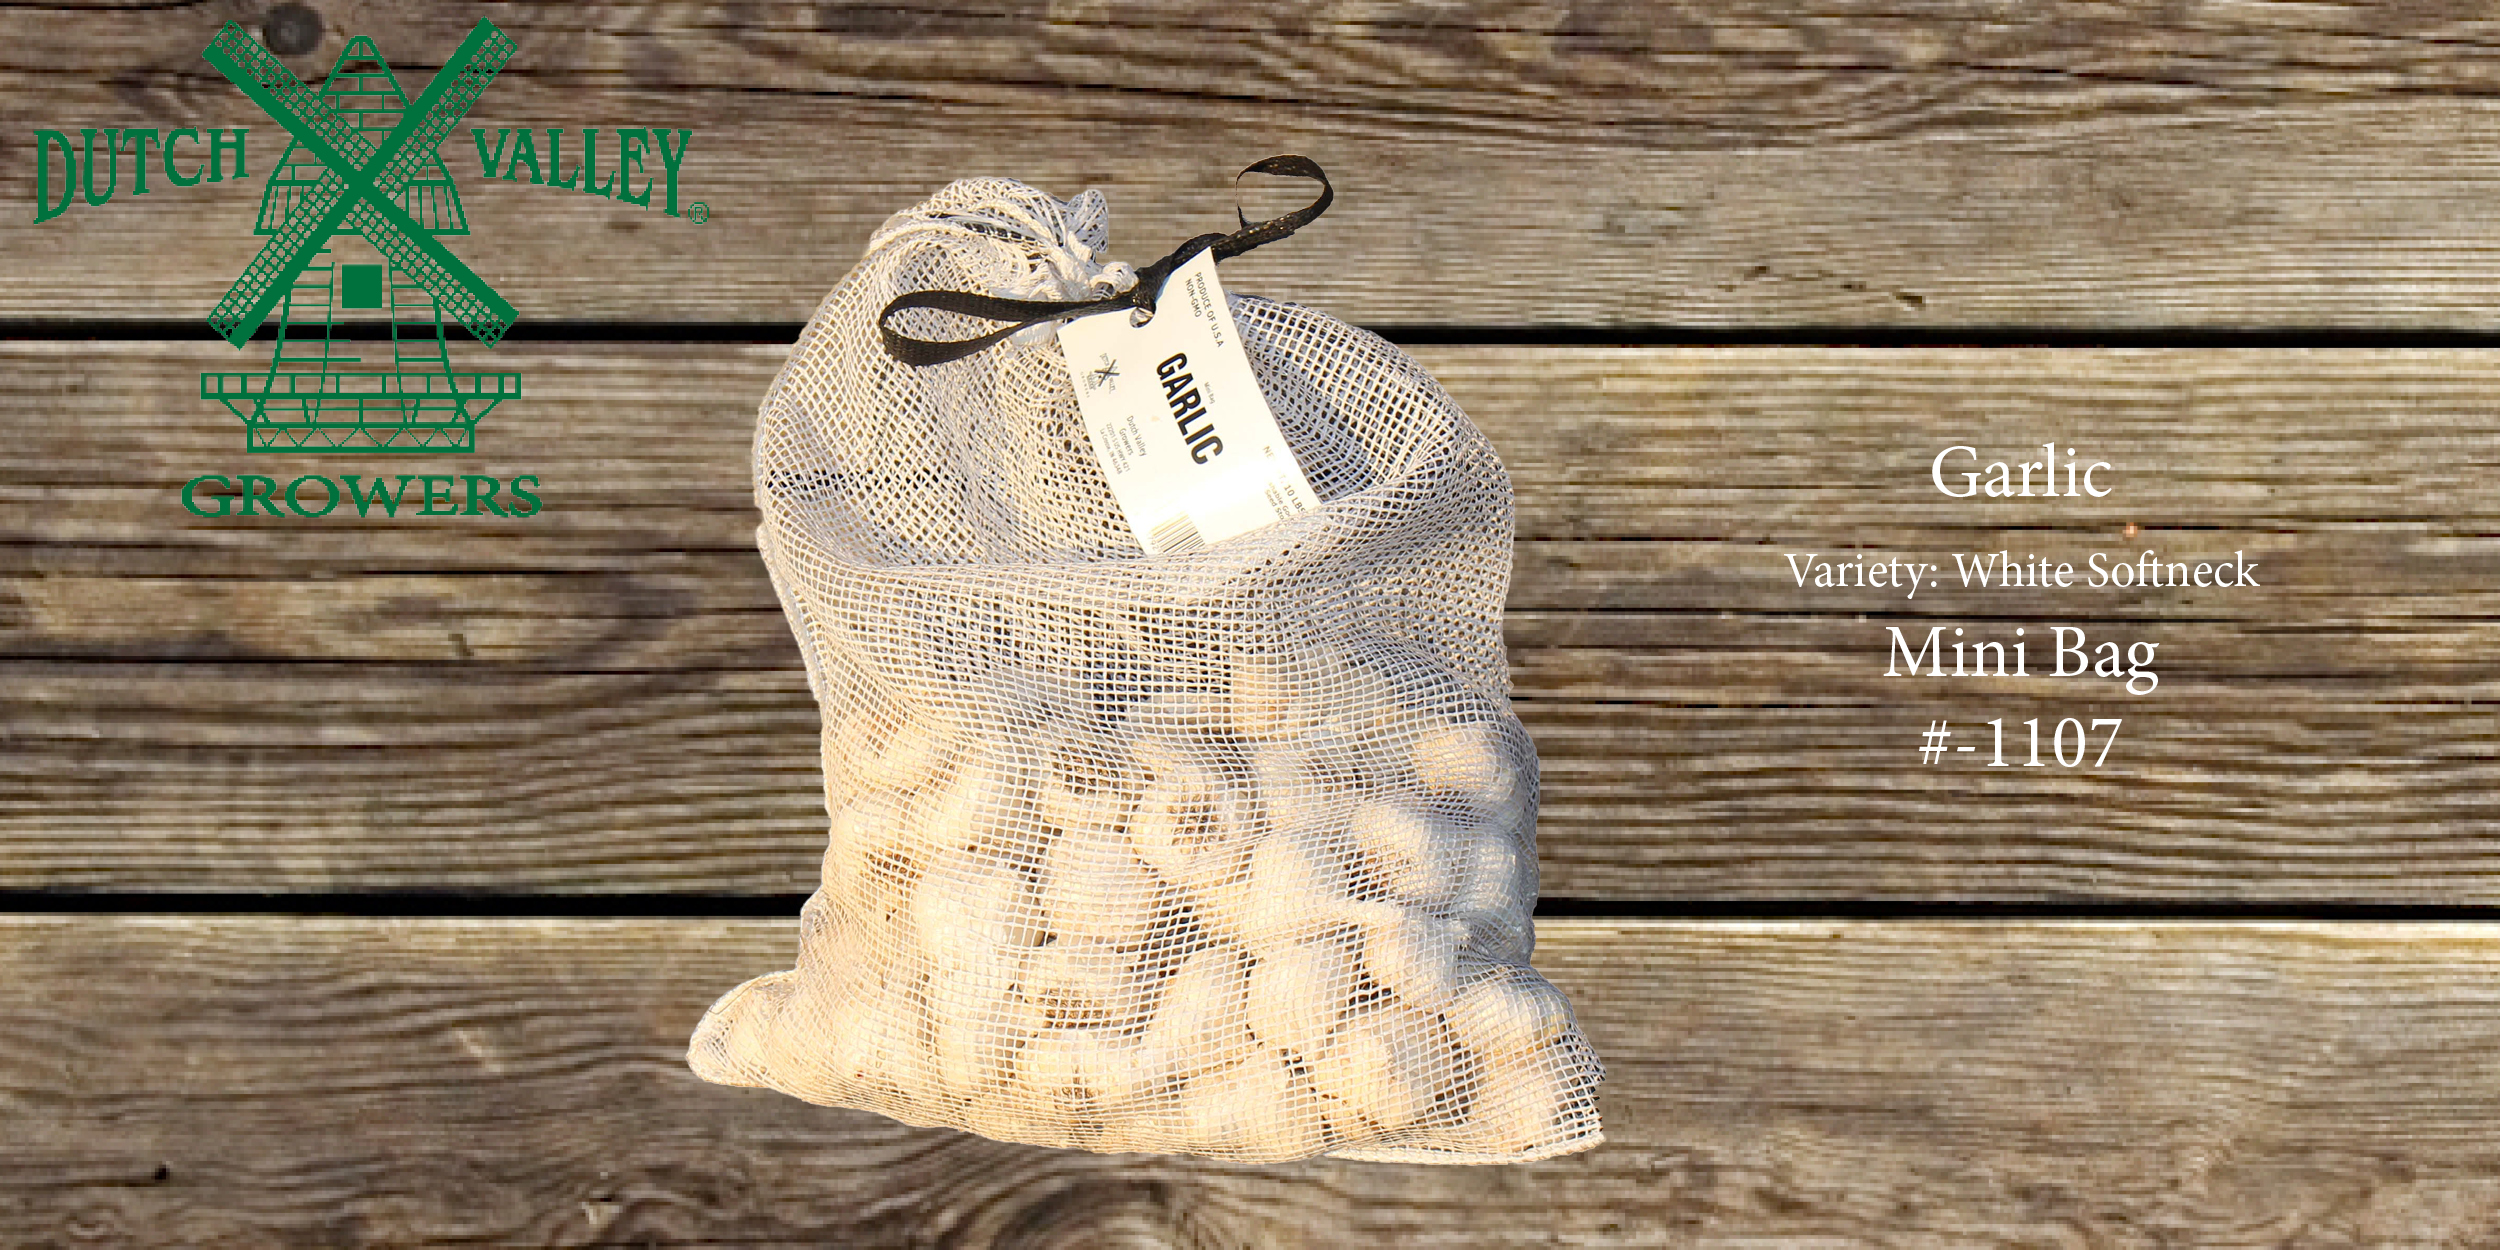 10# Garlic Mini Bag